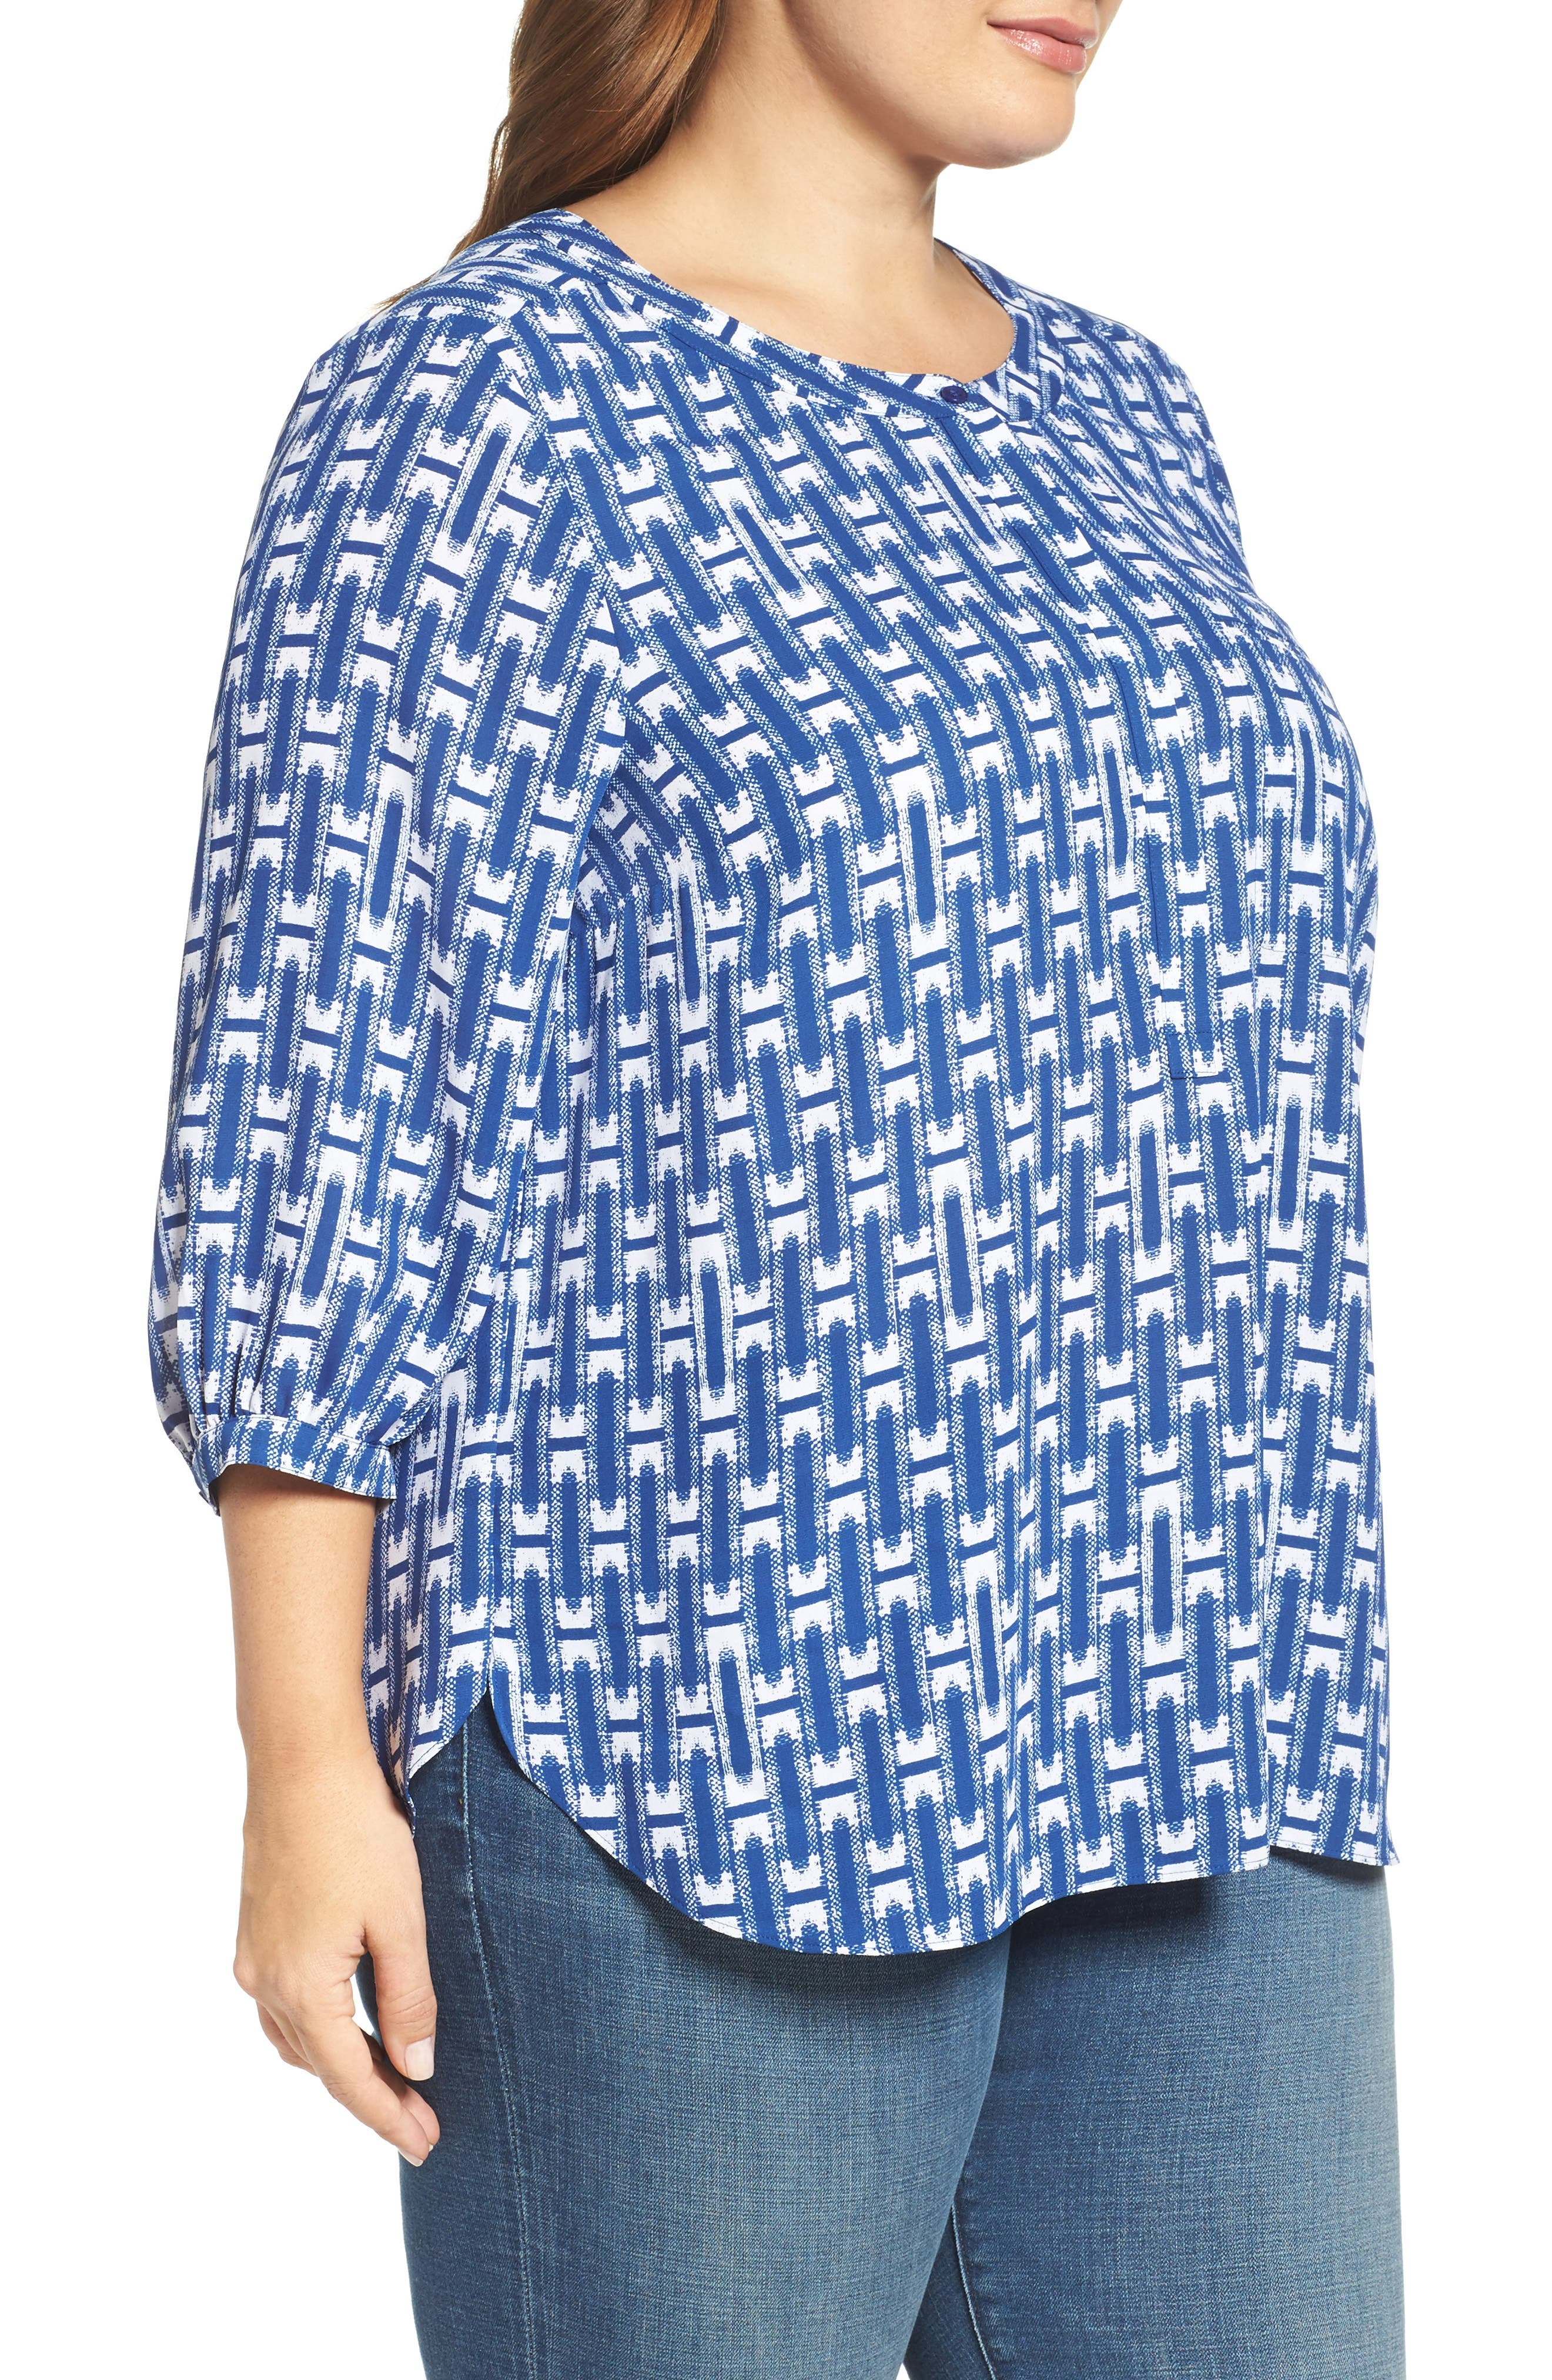 Henley Top,                             Alternate thumbnail 308, color,